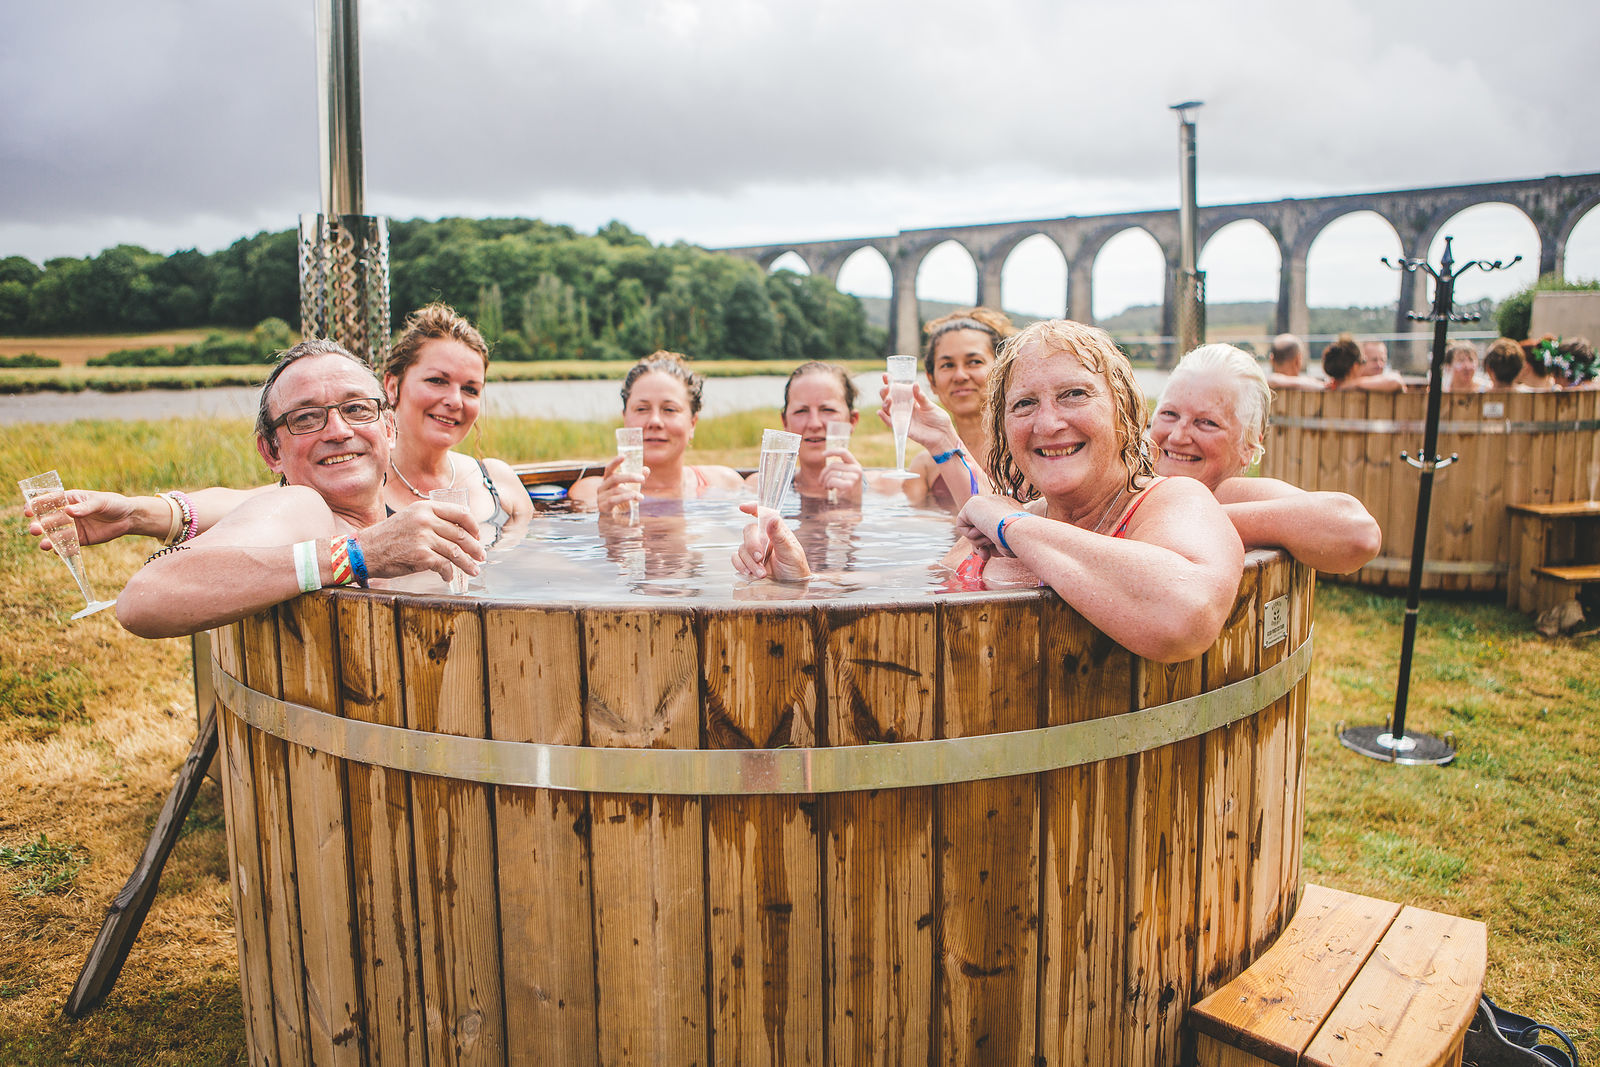 Kernow Springs Hot Tubs and Spa